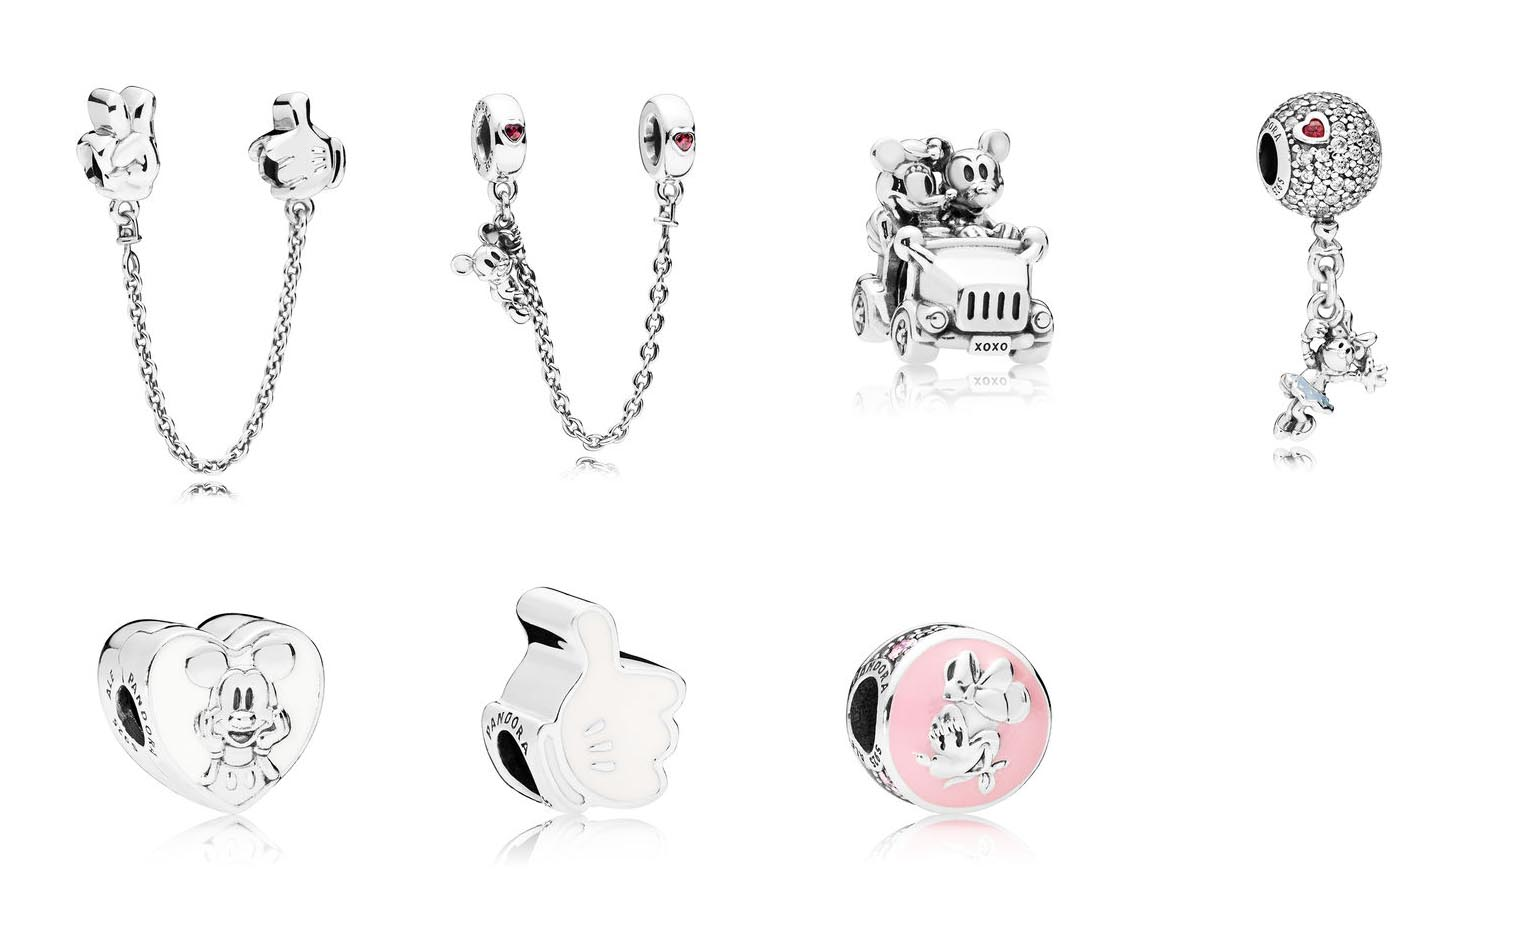 c3843f144 Other new additions include two new safety chains, a Floating Minnie  Dangle, a new Vintage Mickey clip with white enamel, Mickey's glove, and a  Vintage ...